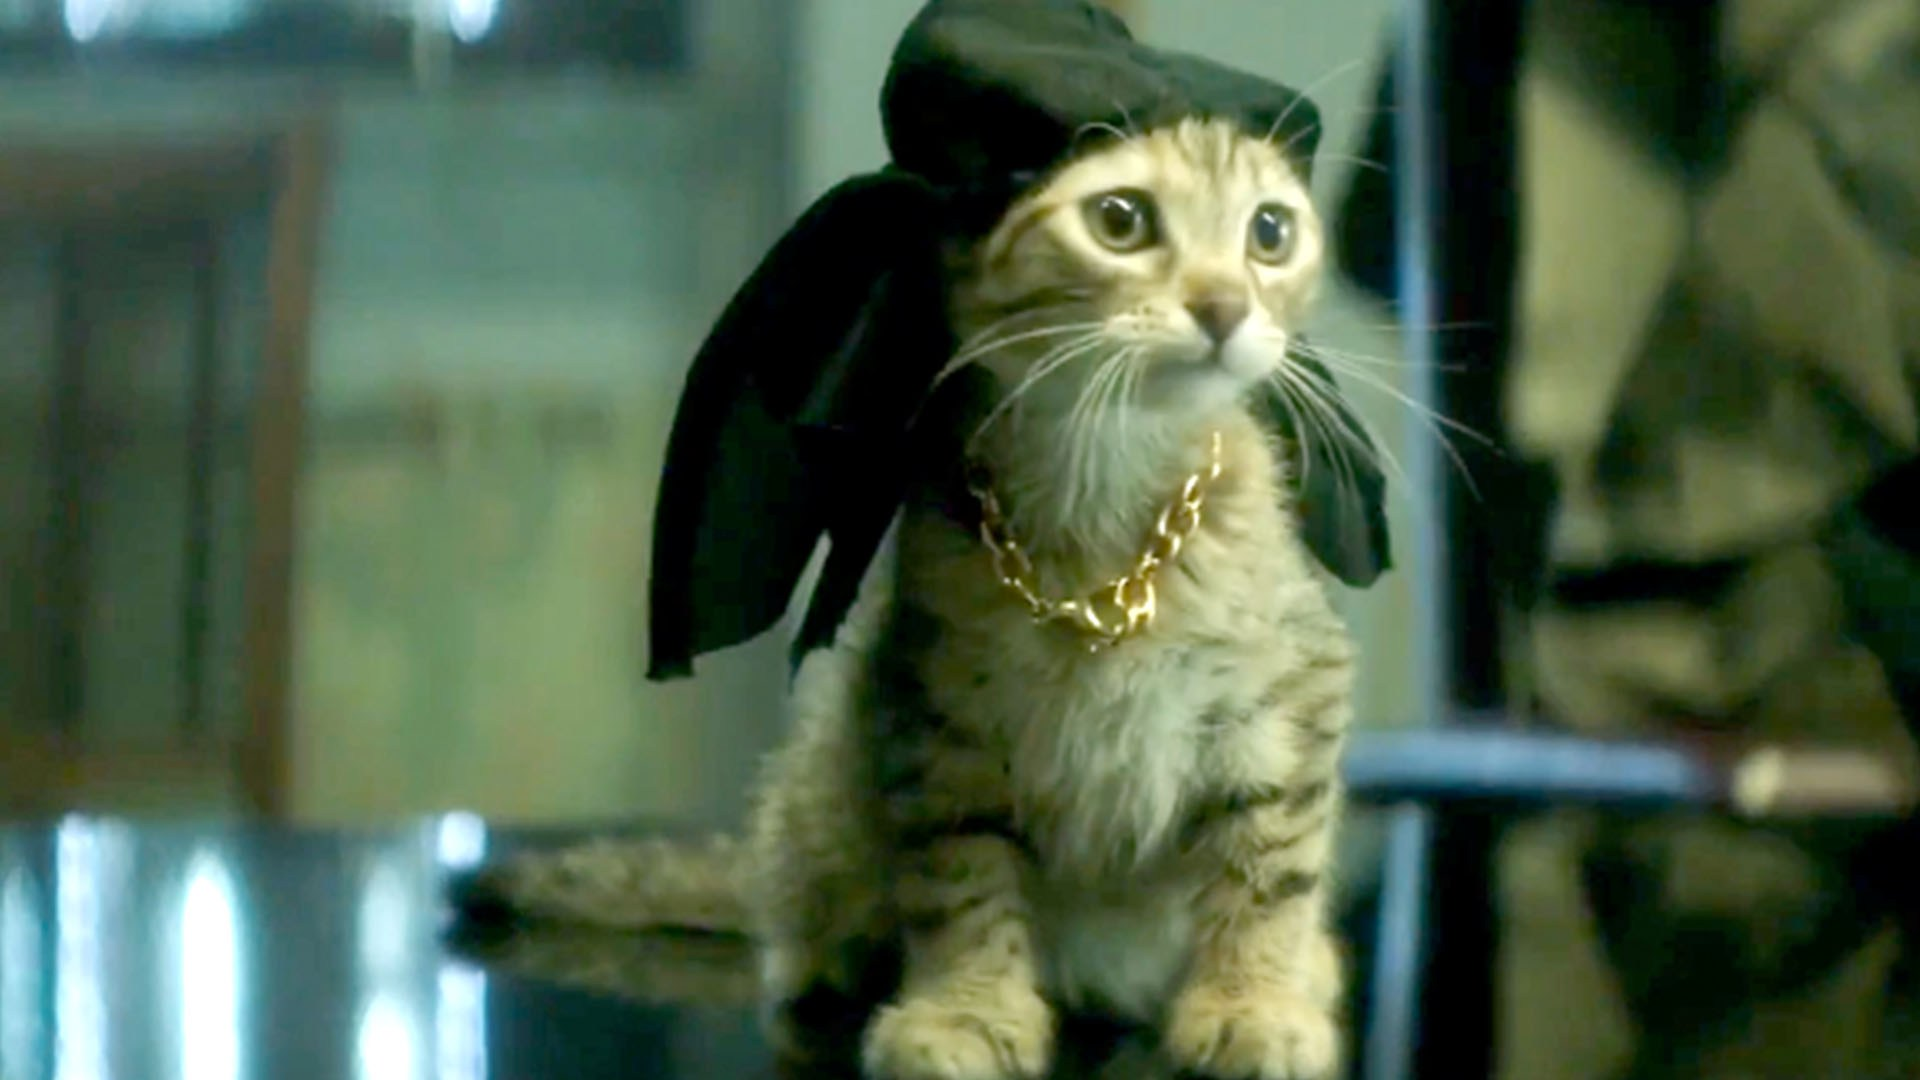 Jordan Peele, Keegan-Michael Key, and THIS KITTEN star in director Peter Atencio's  Keanu